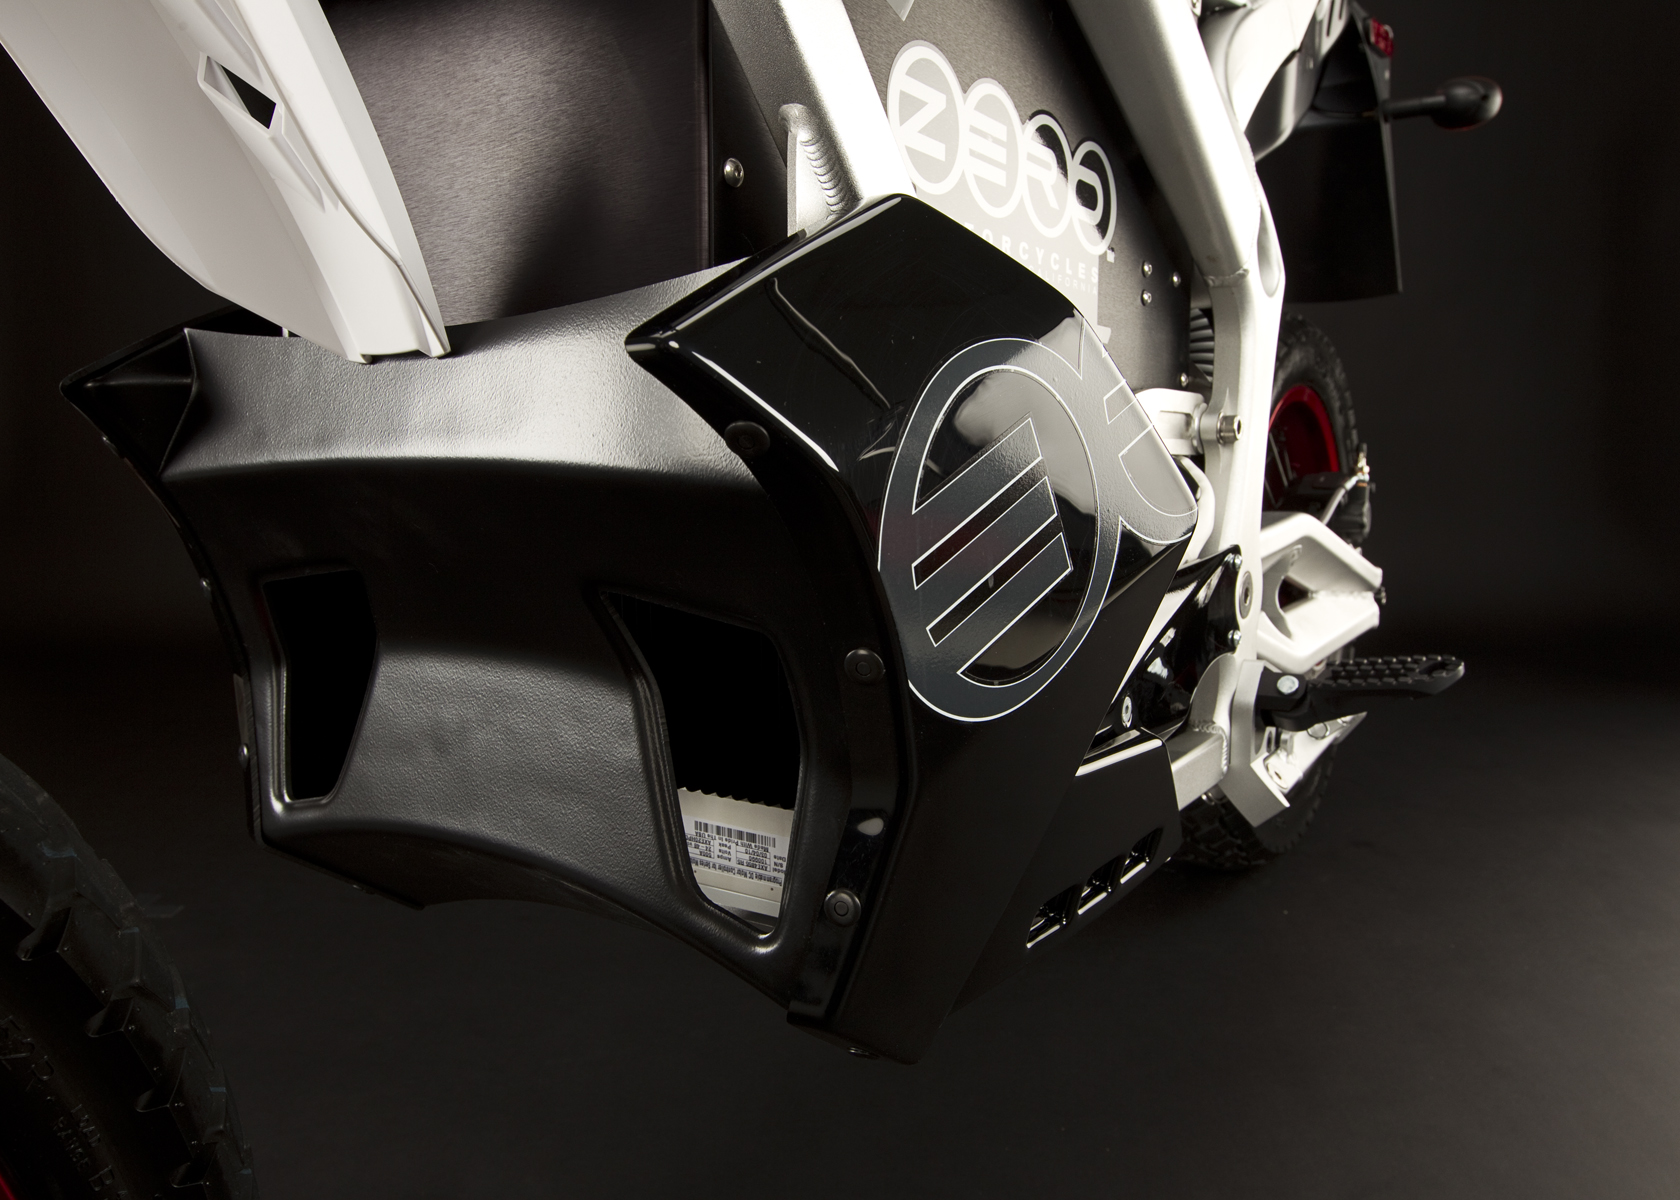 '.2011 Zero DS Electric Motorcycle: Carbon Fiber Vents.'